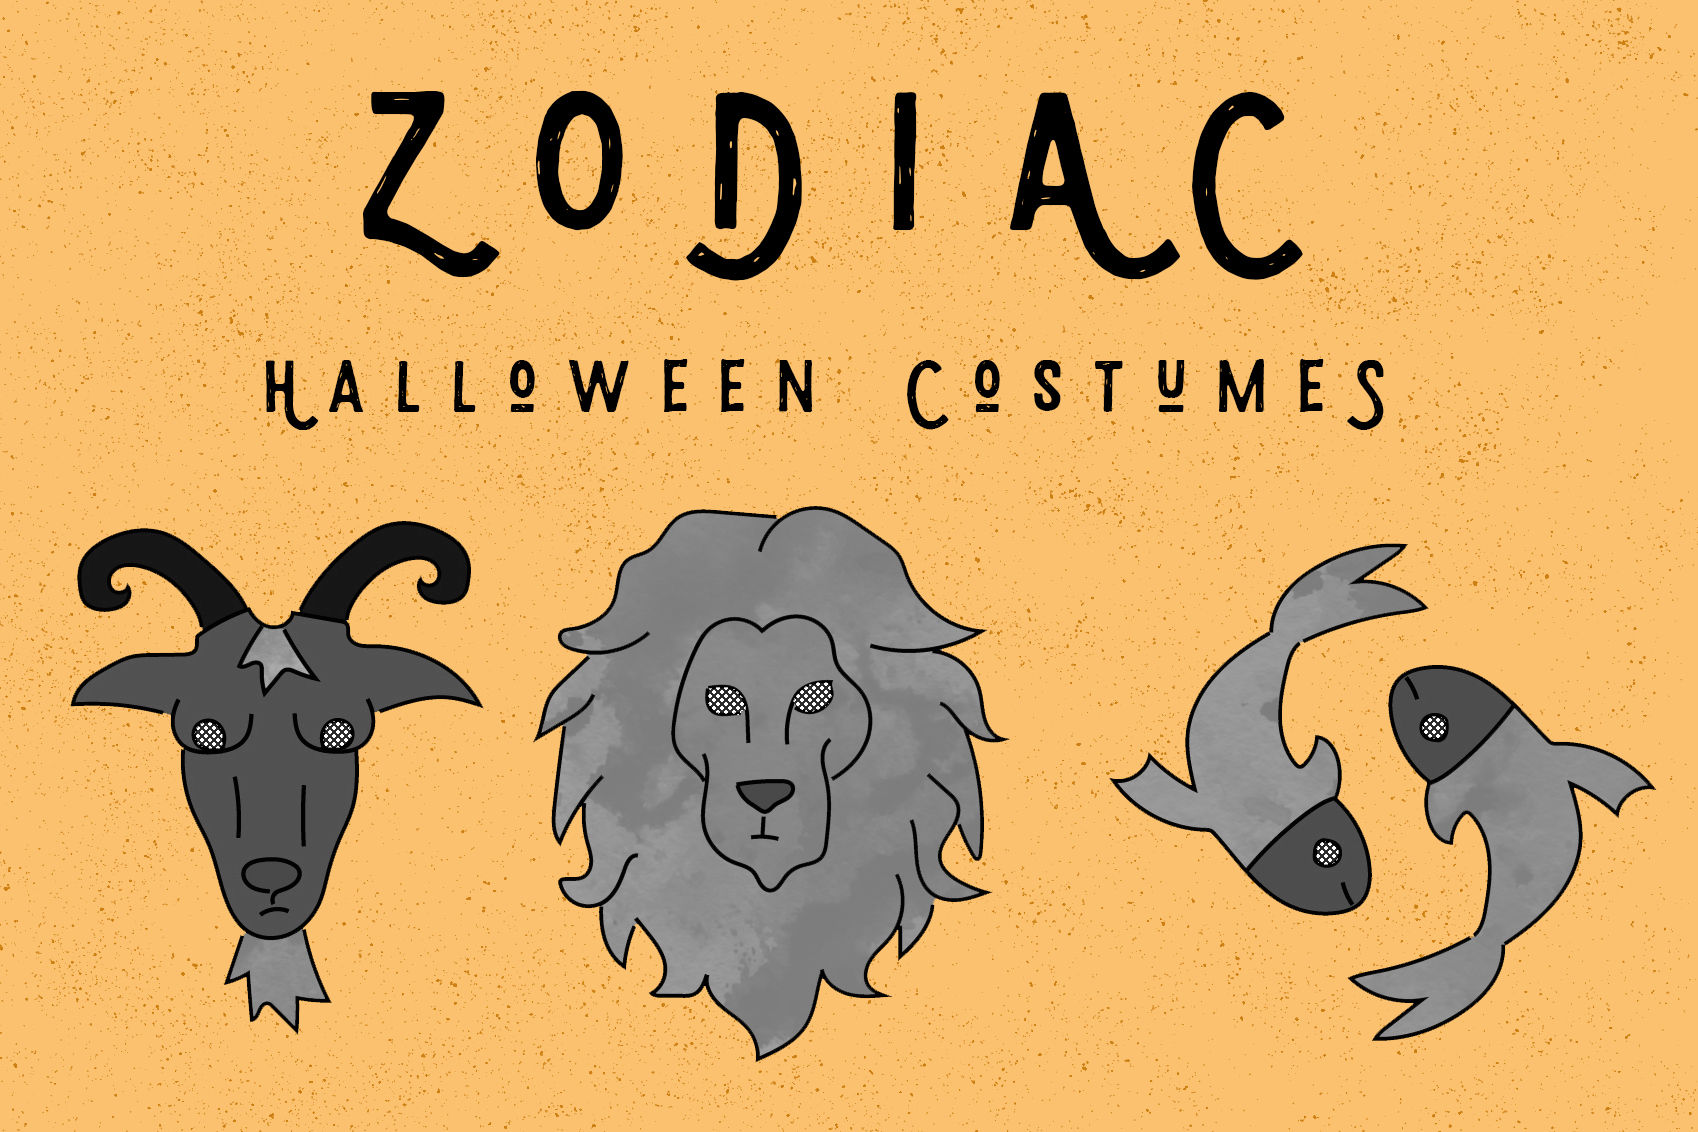 What Halloween costume you should dress as based on your